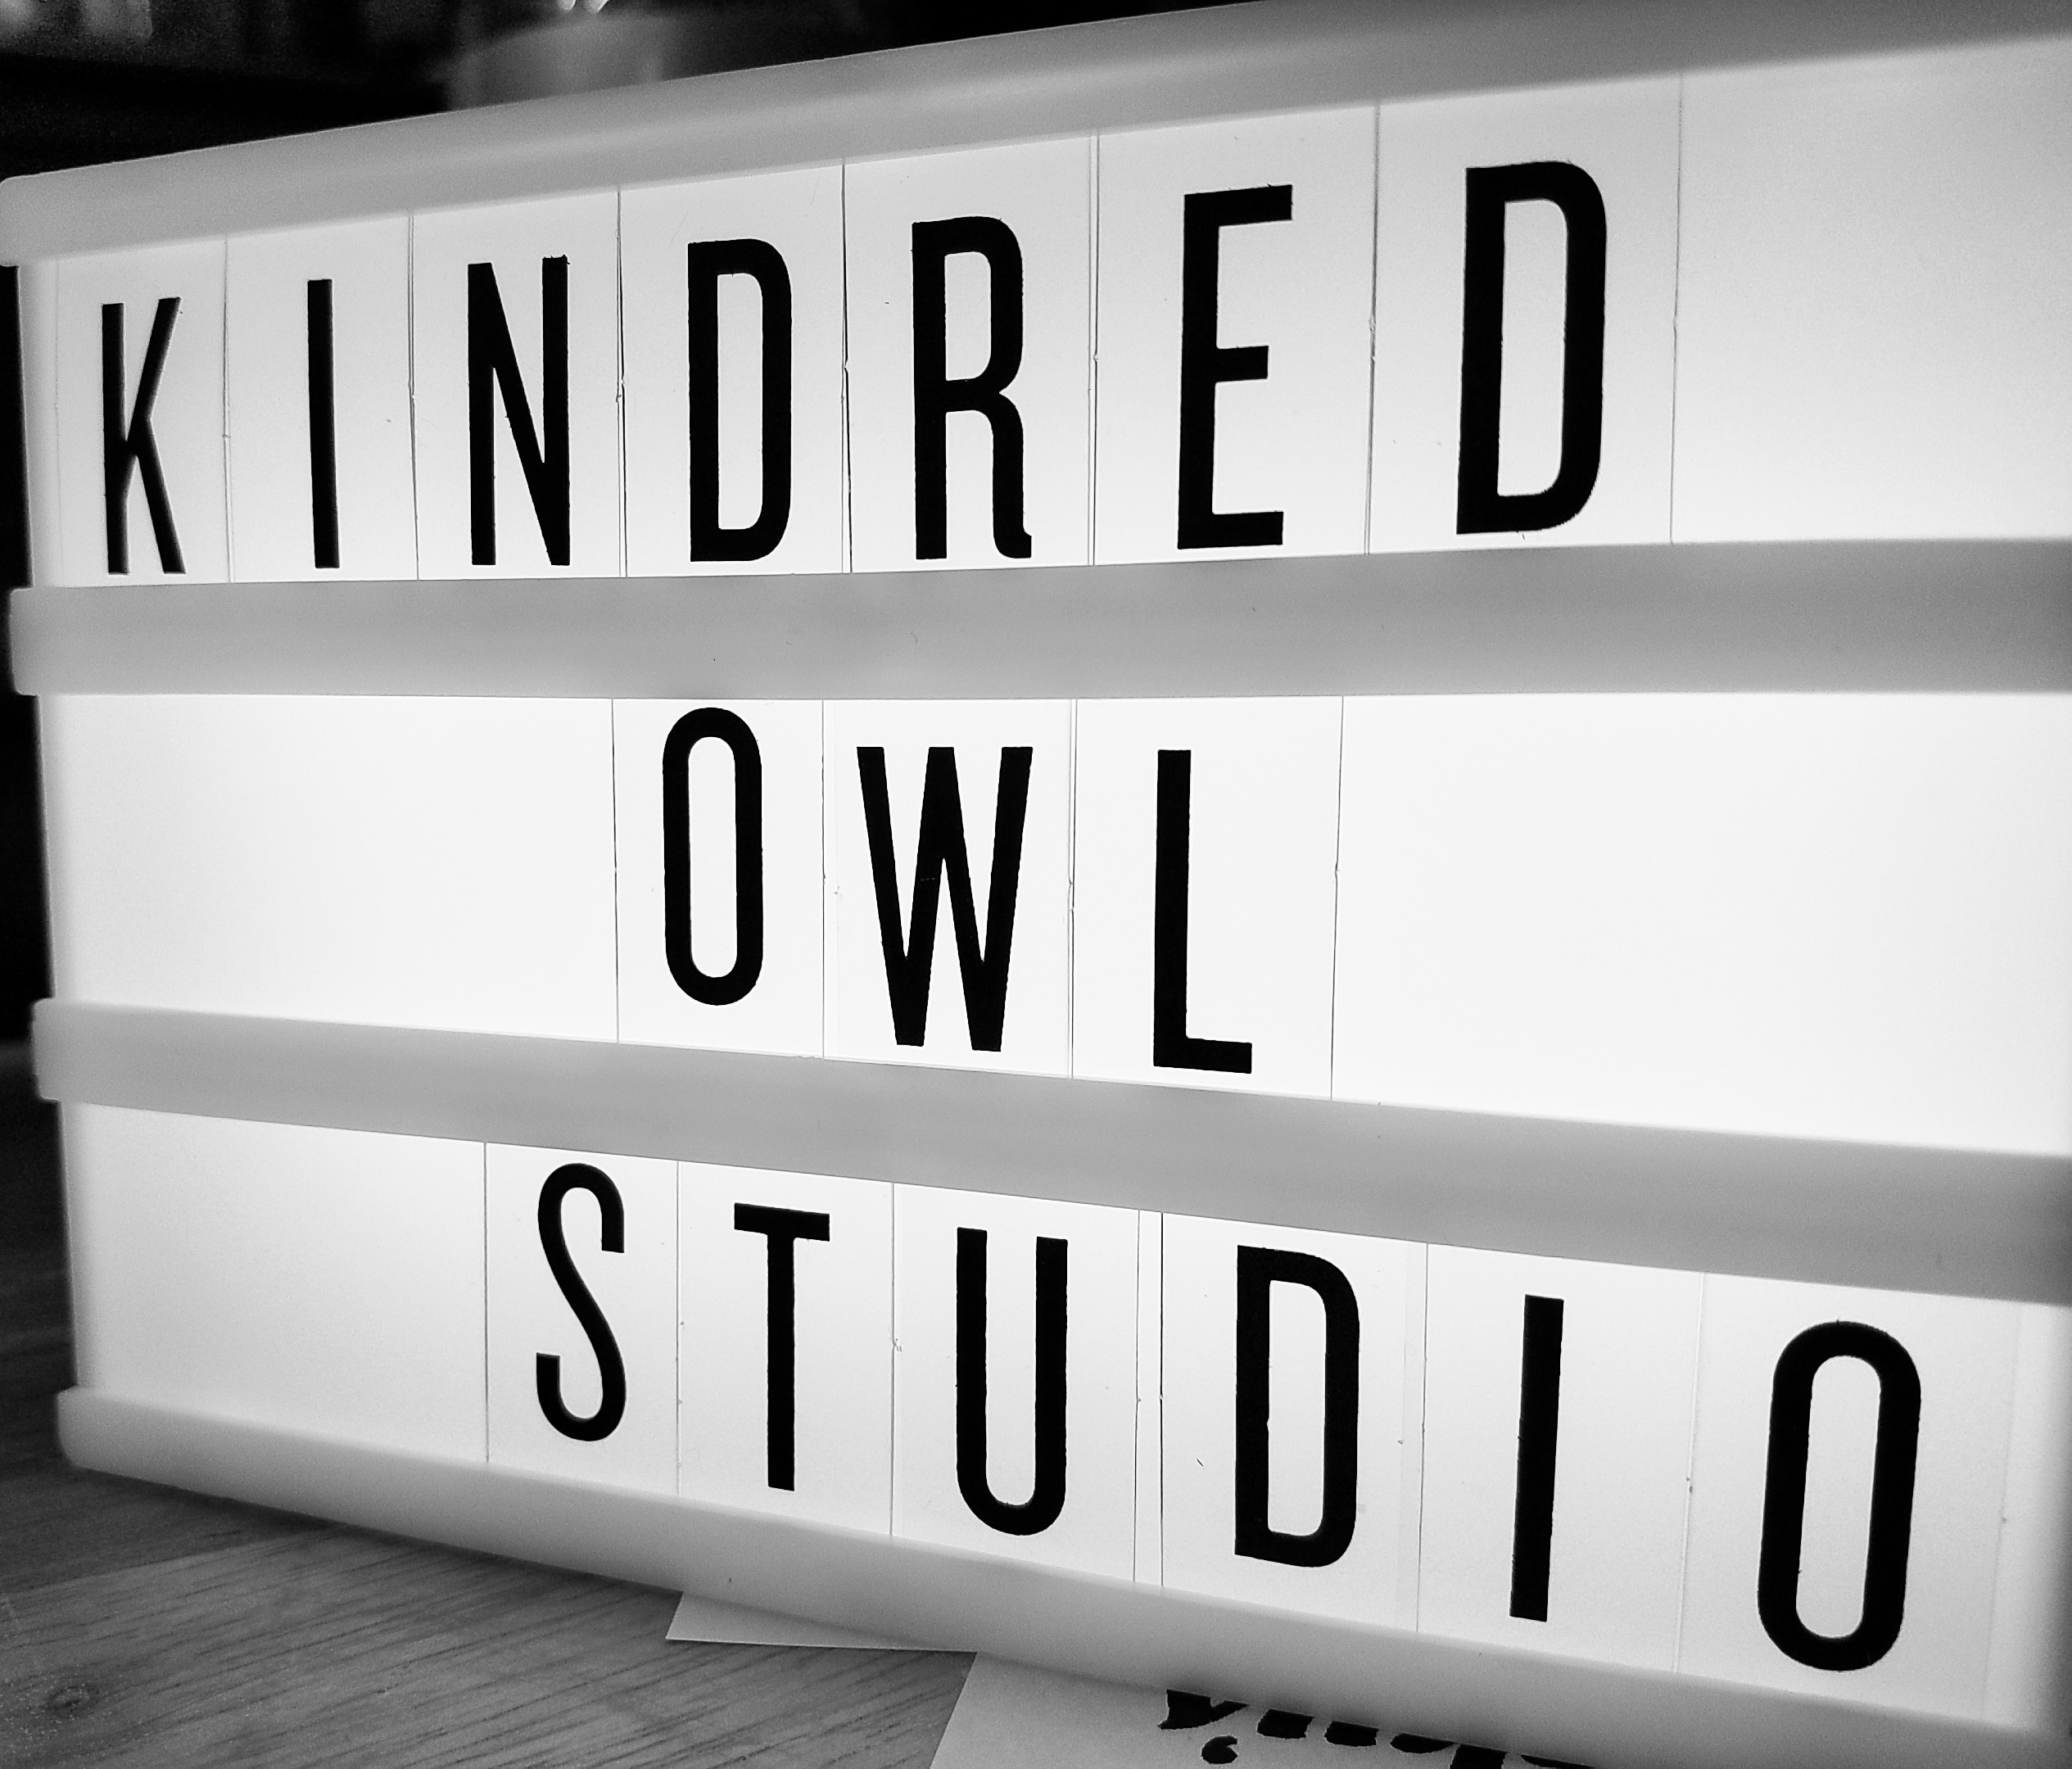 Kindred Owl Studio